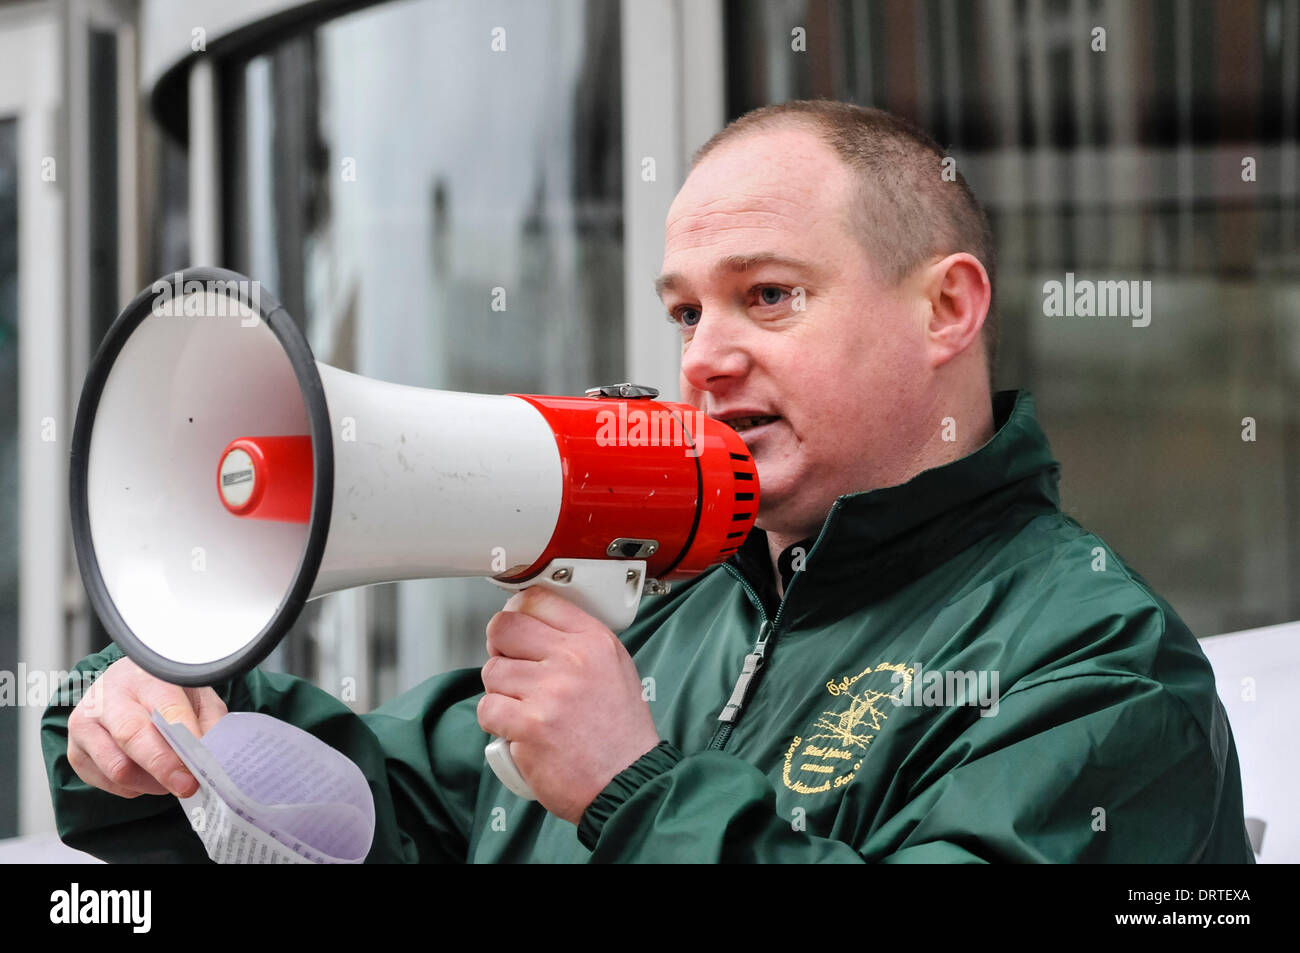 Belfast, Northern Ireland, 1 Feb 2014 - Republican Network for Unity member Sammy Cusick from North Belfast Civil Rights Association gives his speech against lack of social housing and facilities in Belfast. Credit:  Stephen Barnes/Alamy Live News - Stock Image